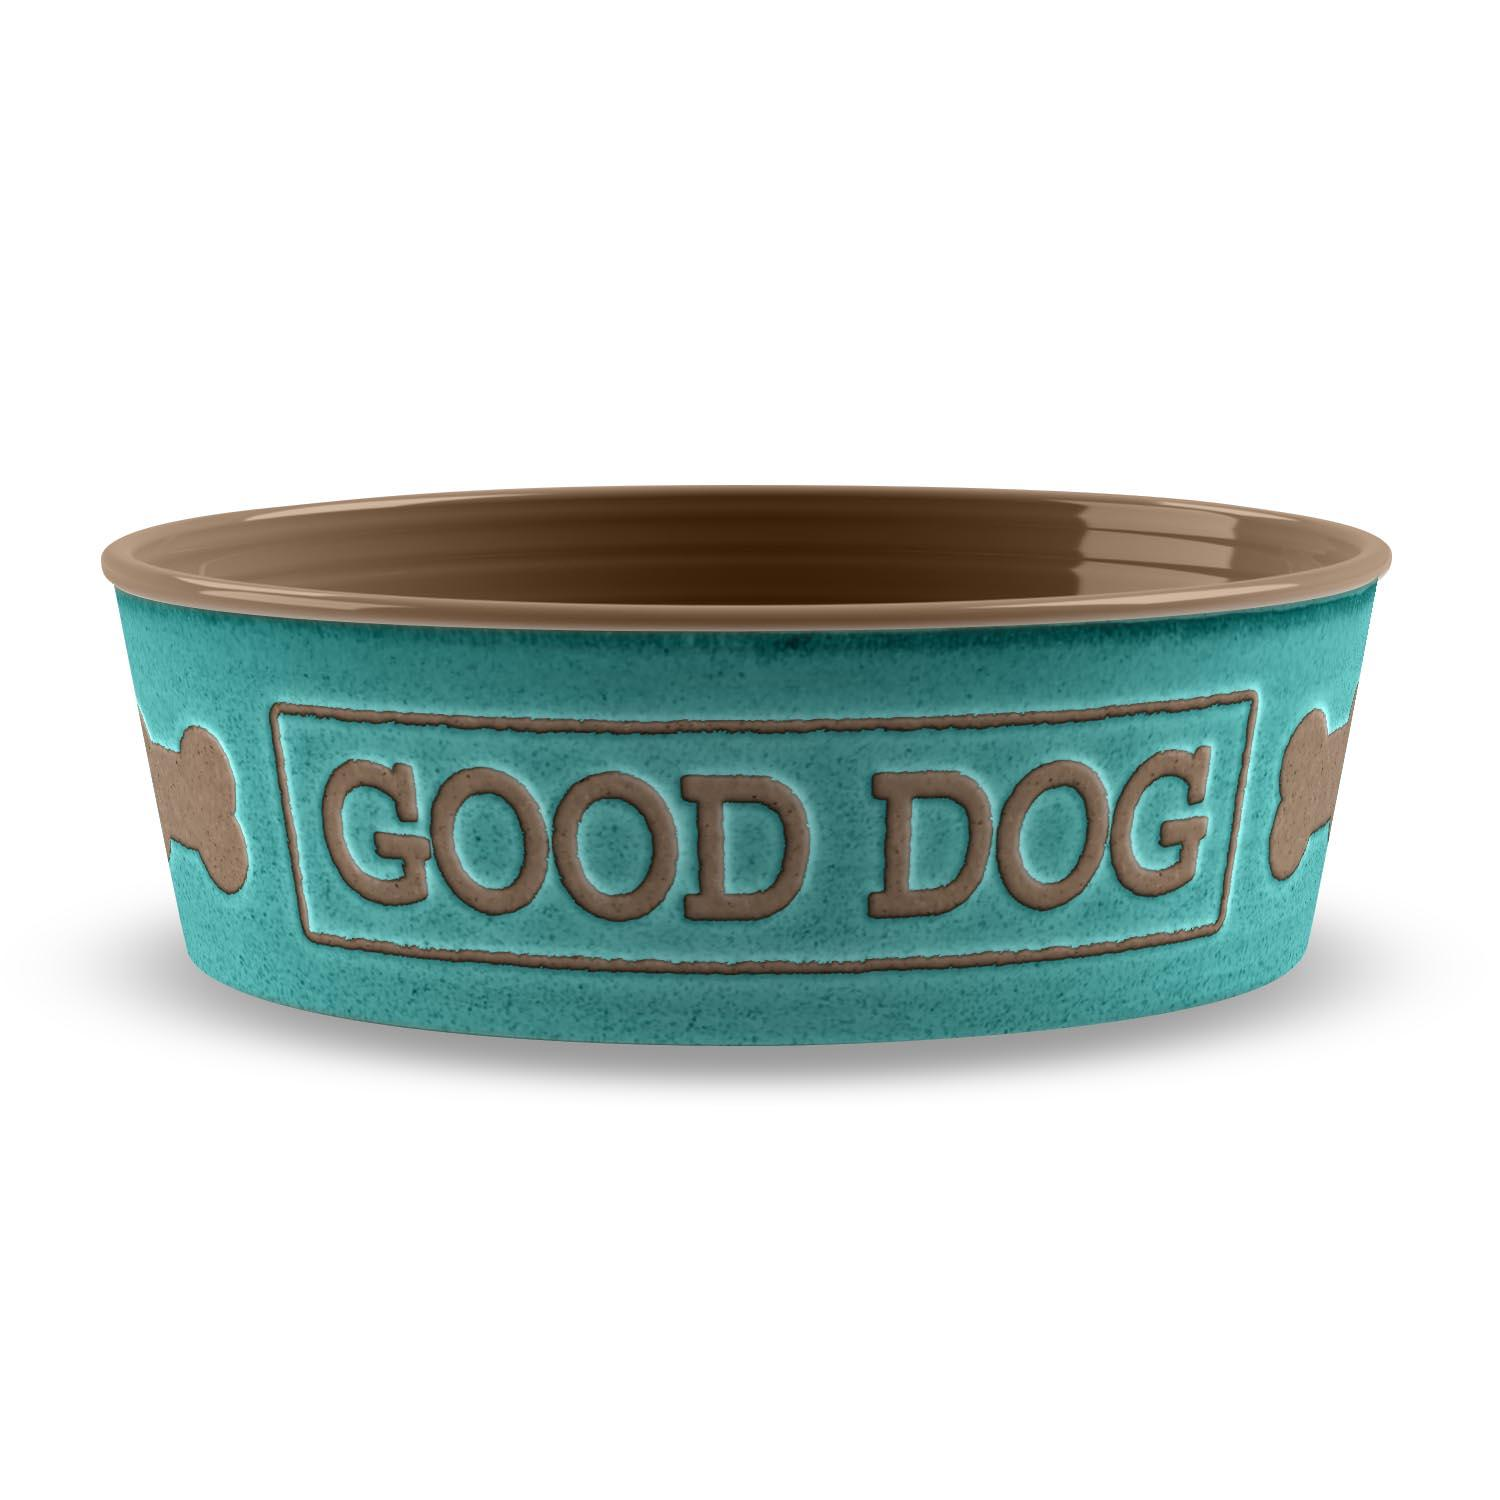 Good Dog Pet Bowl by TarHong - Teal